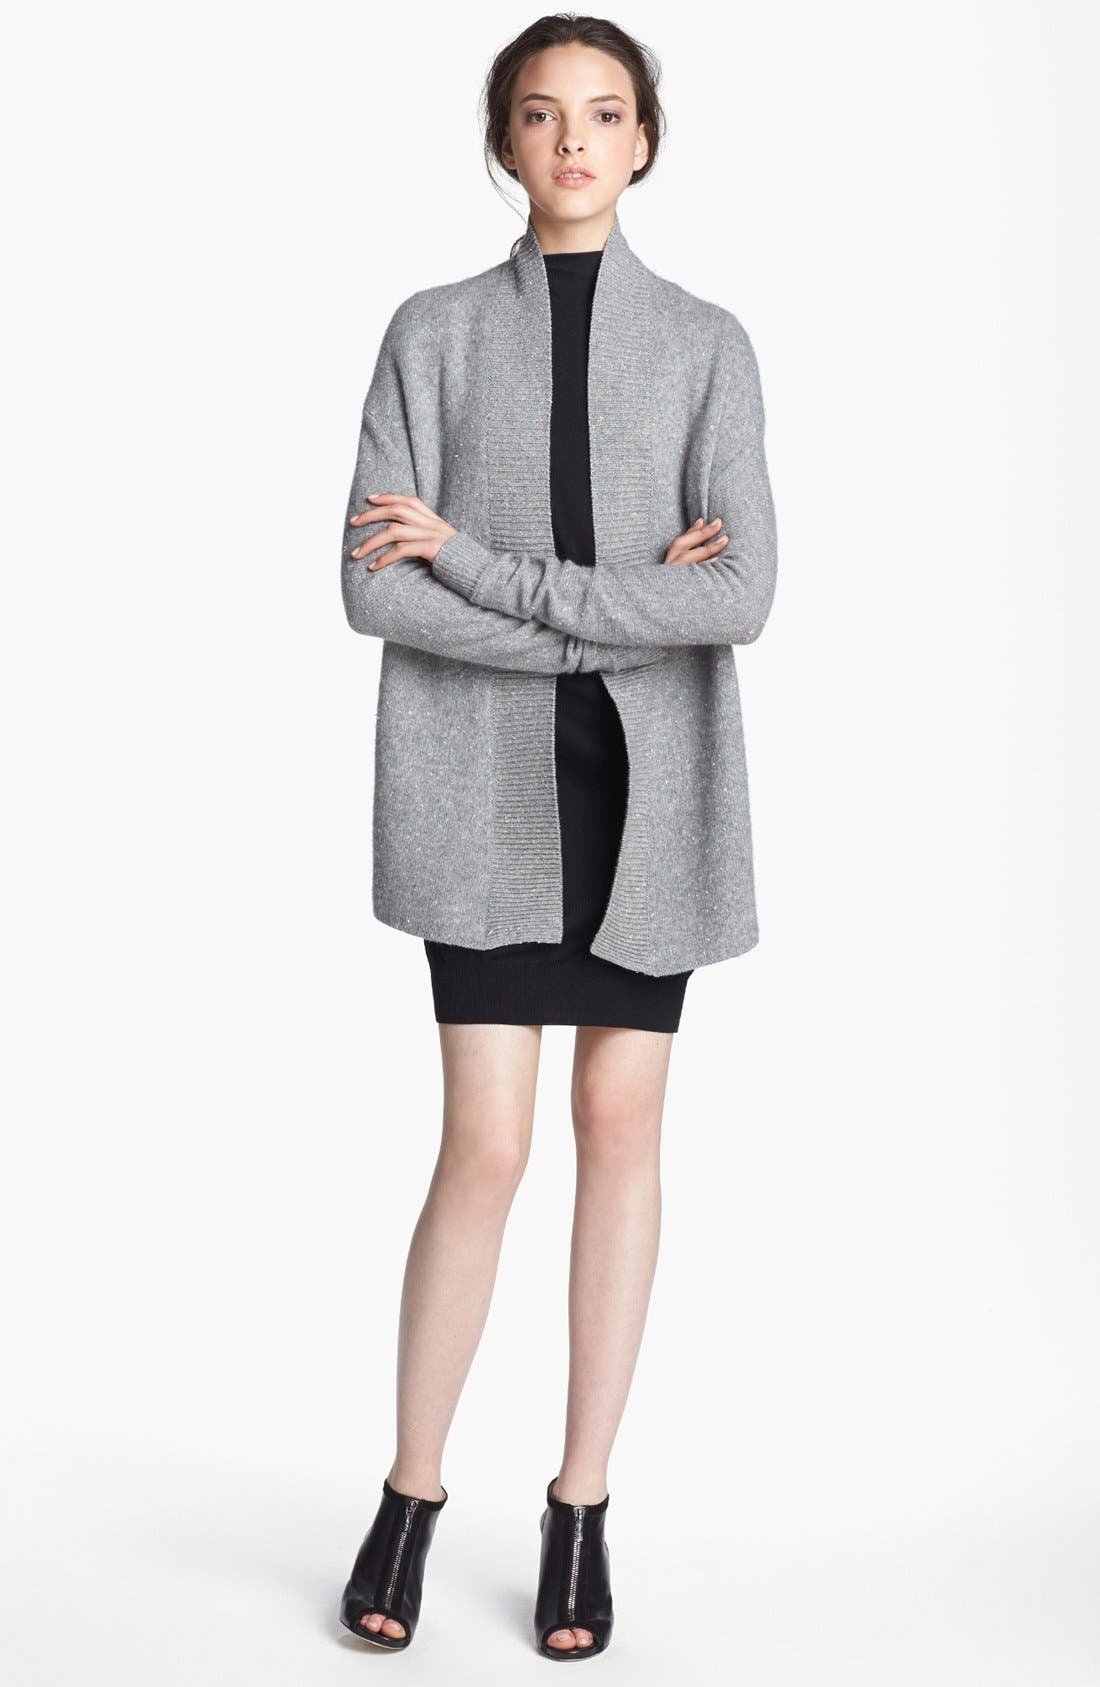 Main Image - Alexander Wang Donegal Tweed Knit Cardigan